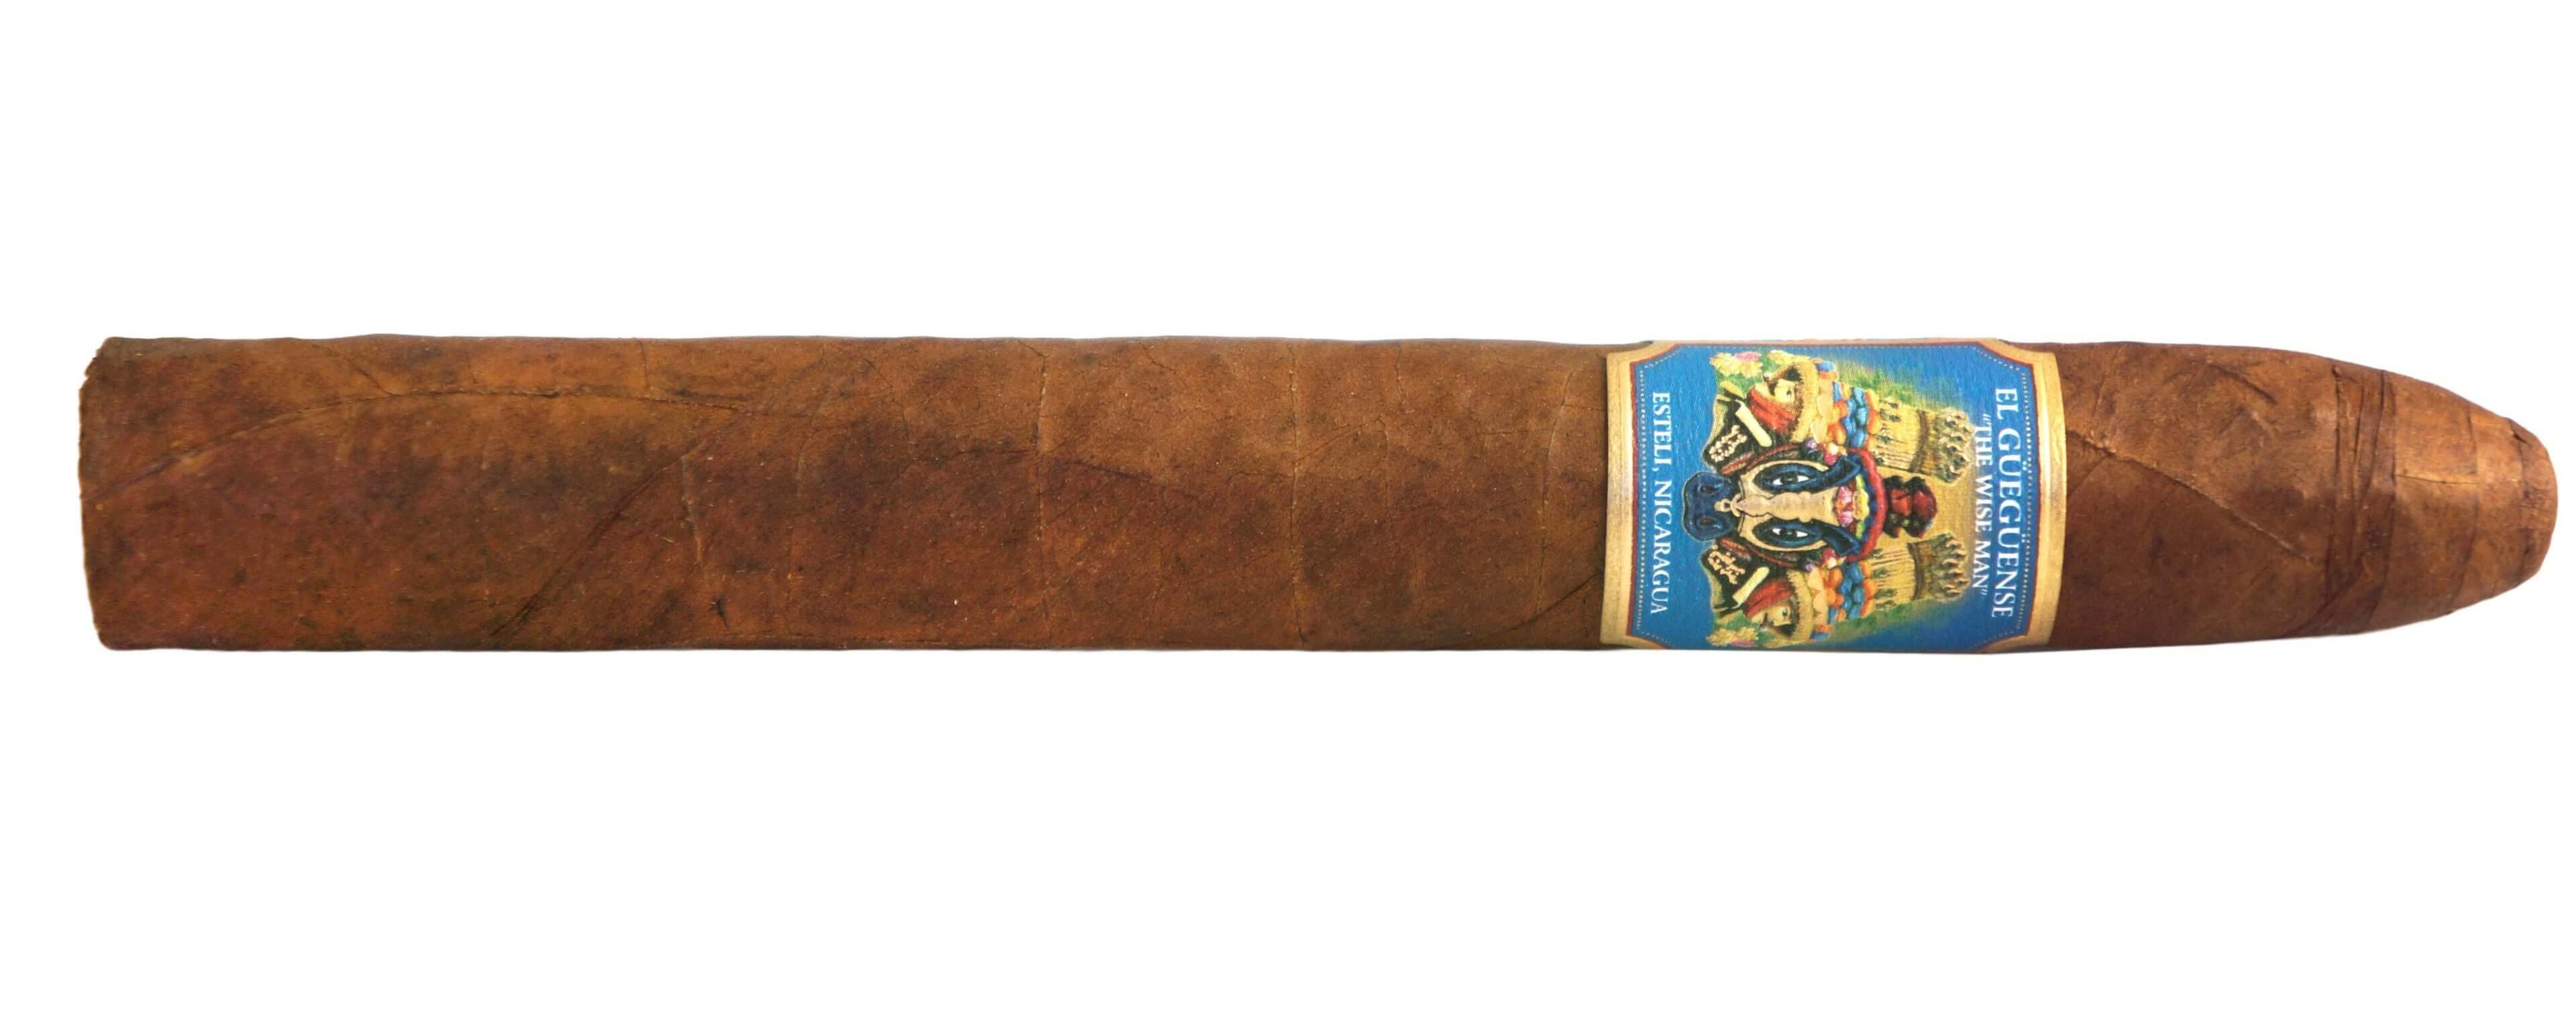 Blind Cigar Review: Foundation | El Güegüense Torpedo